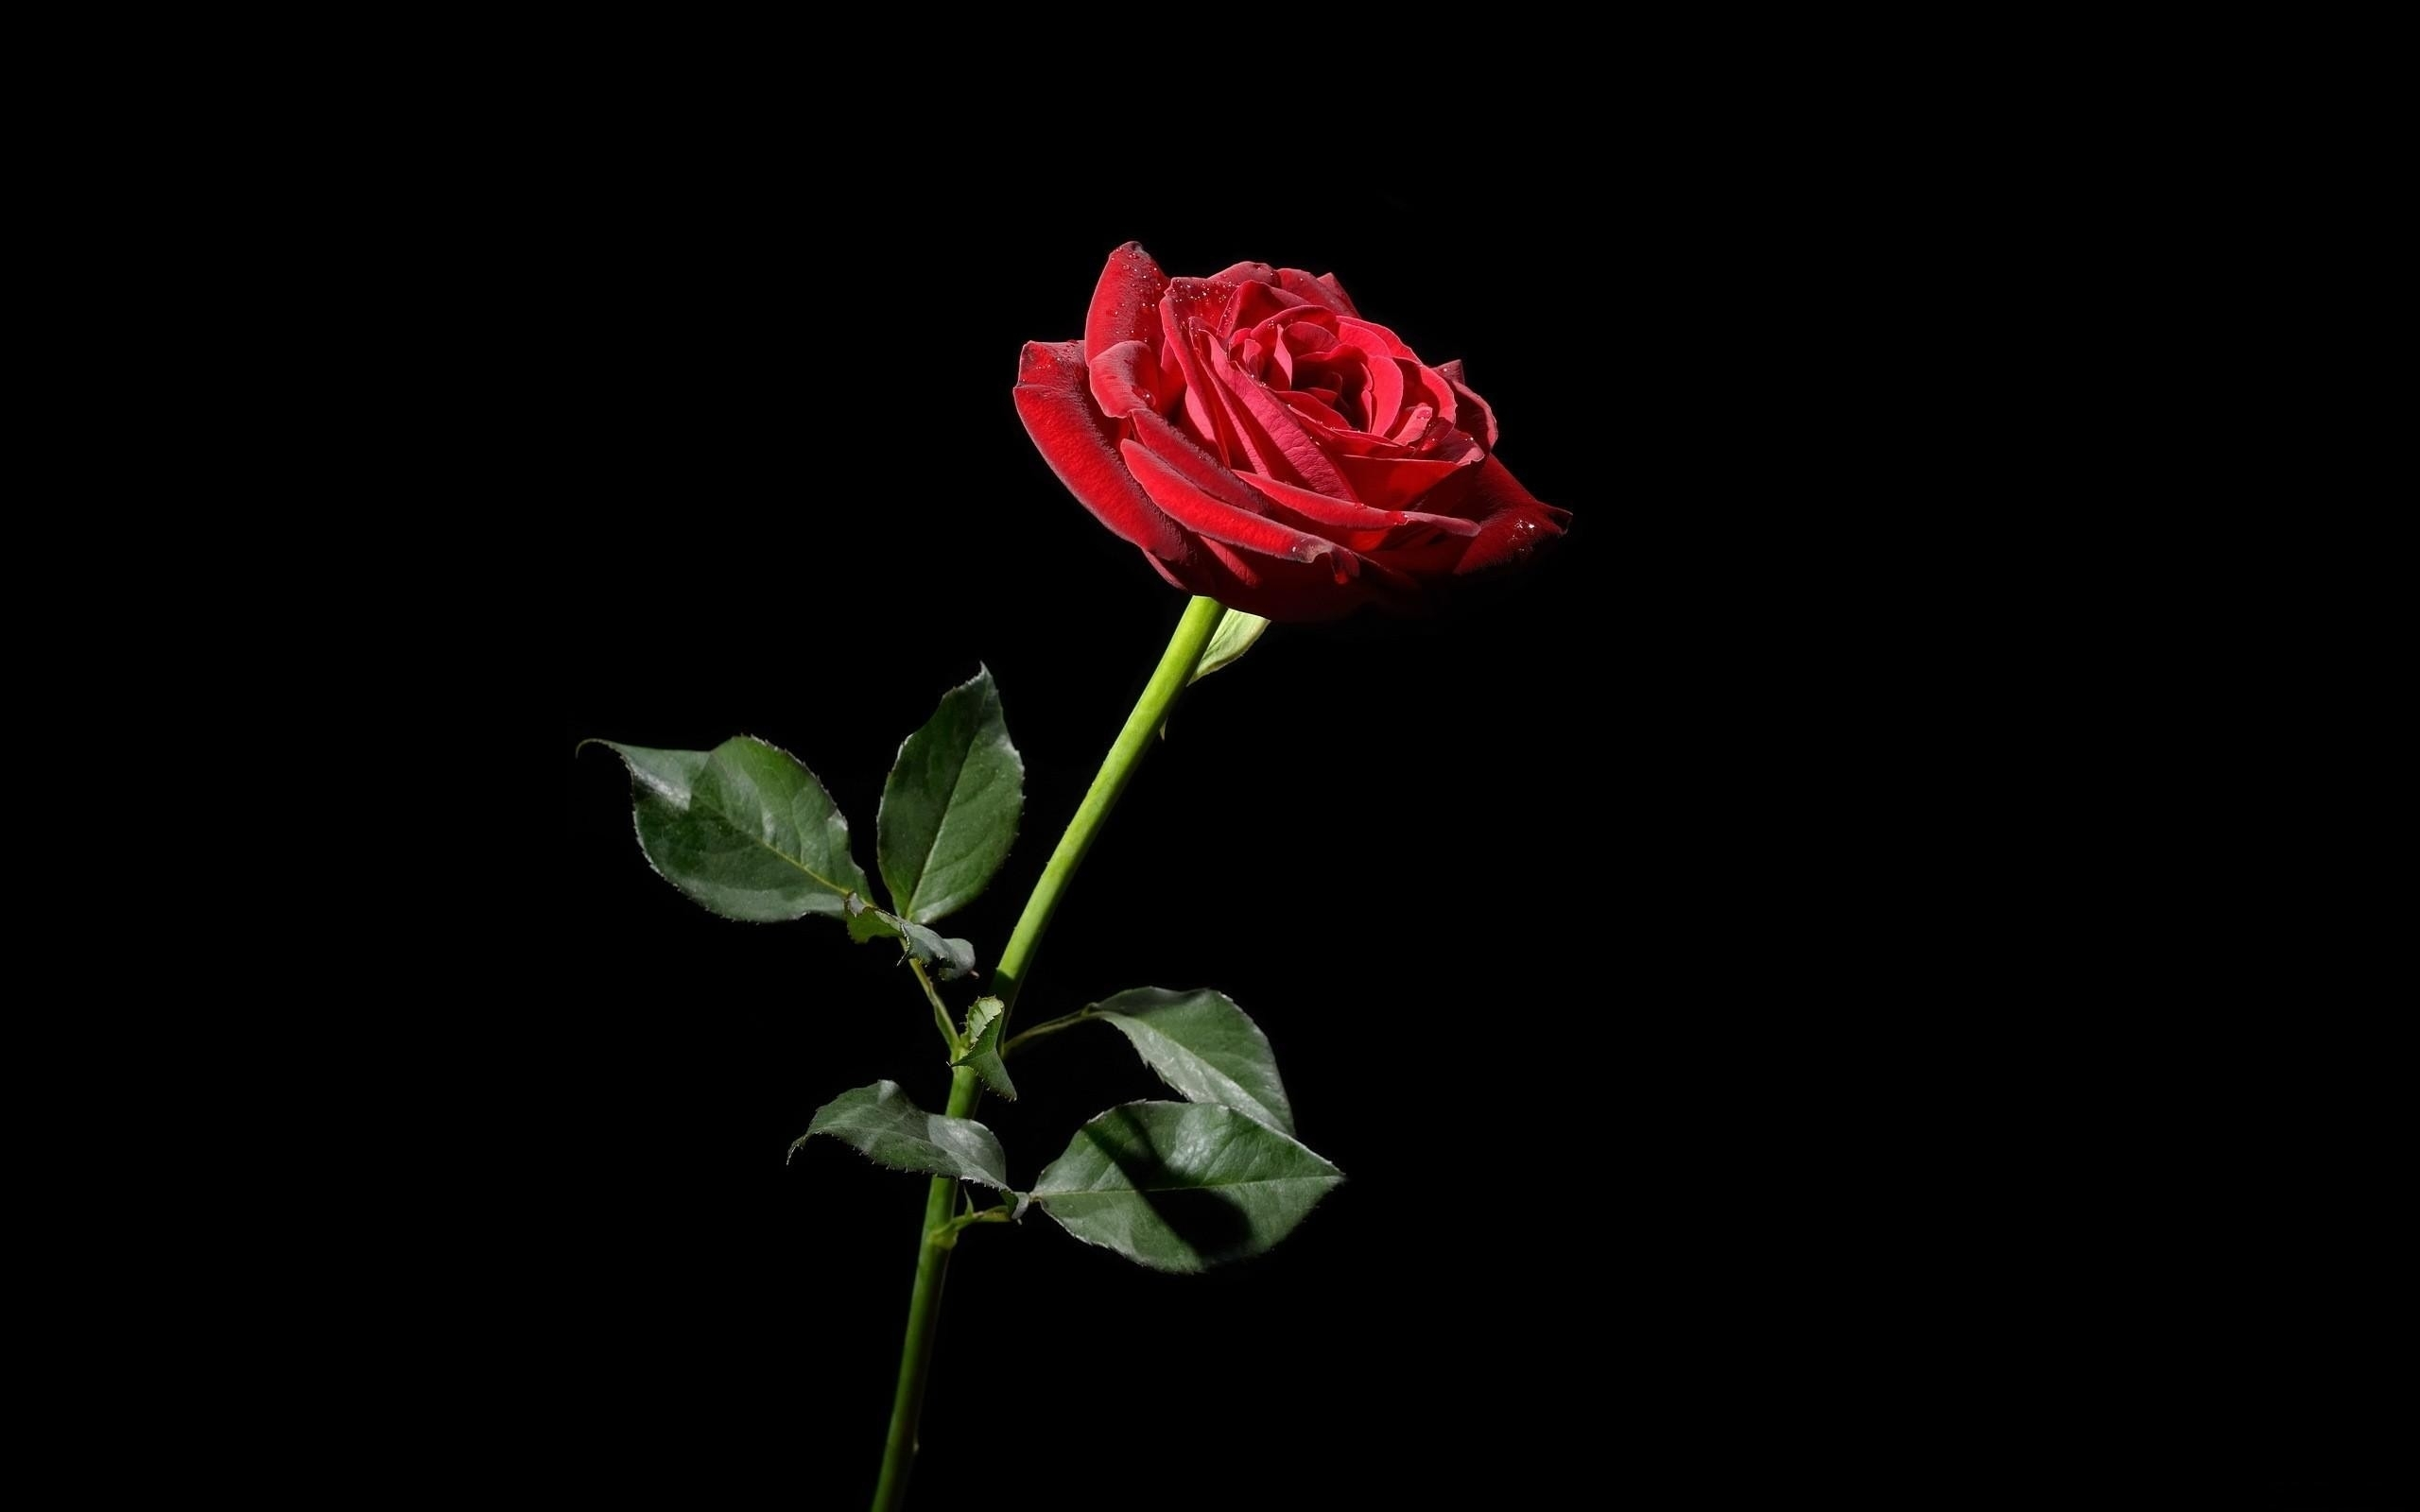 red rose with black background (42+ images)